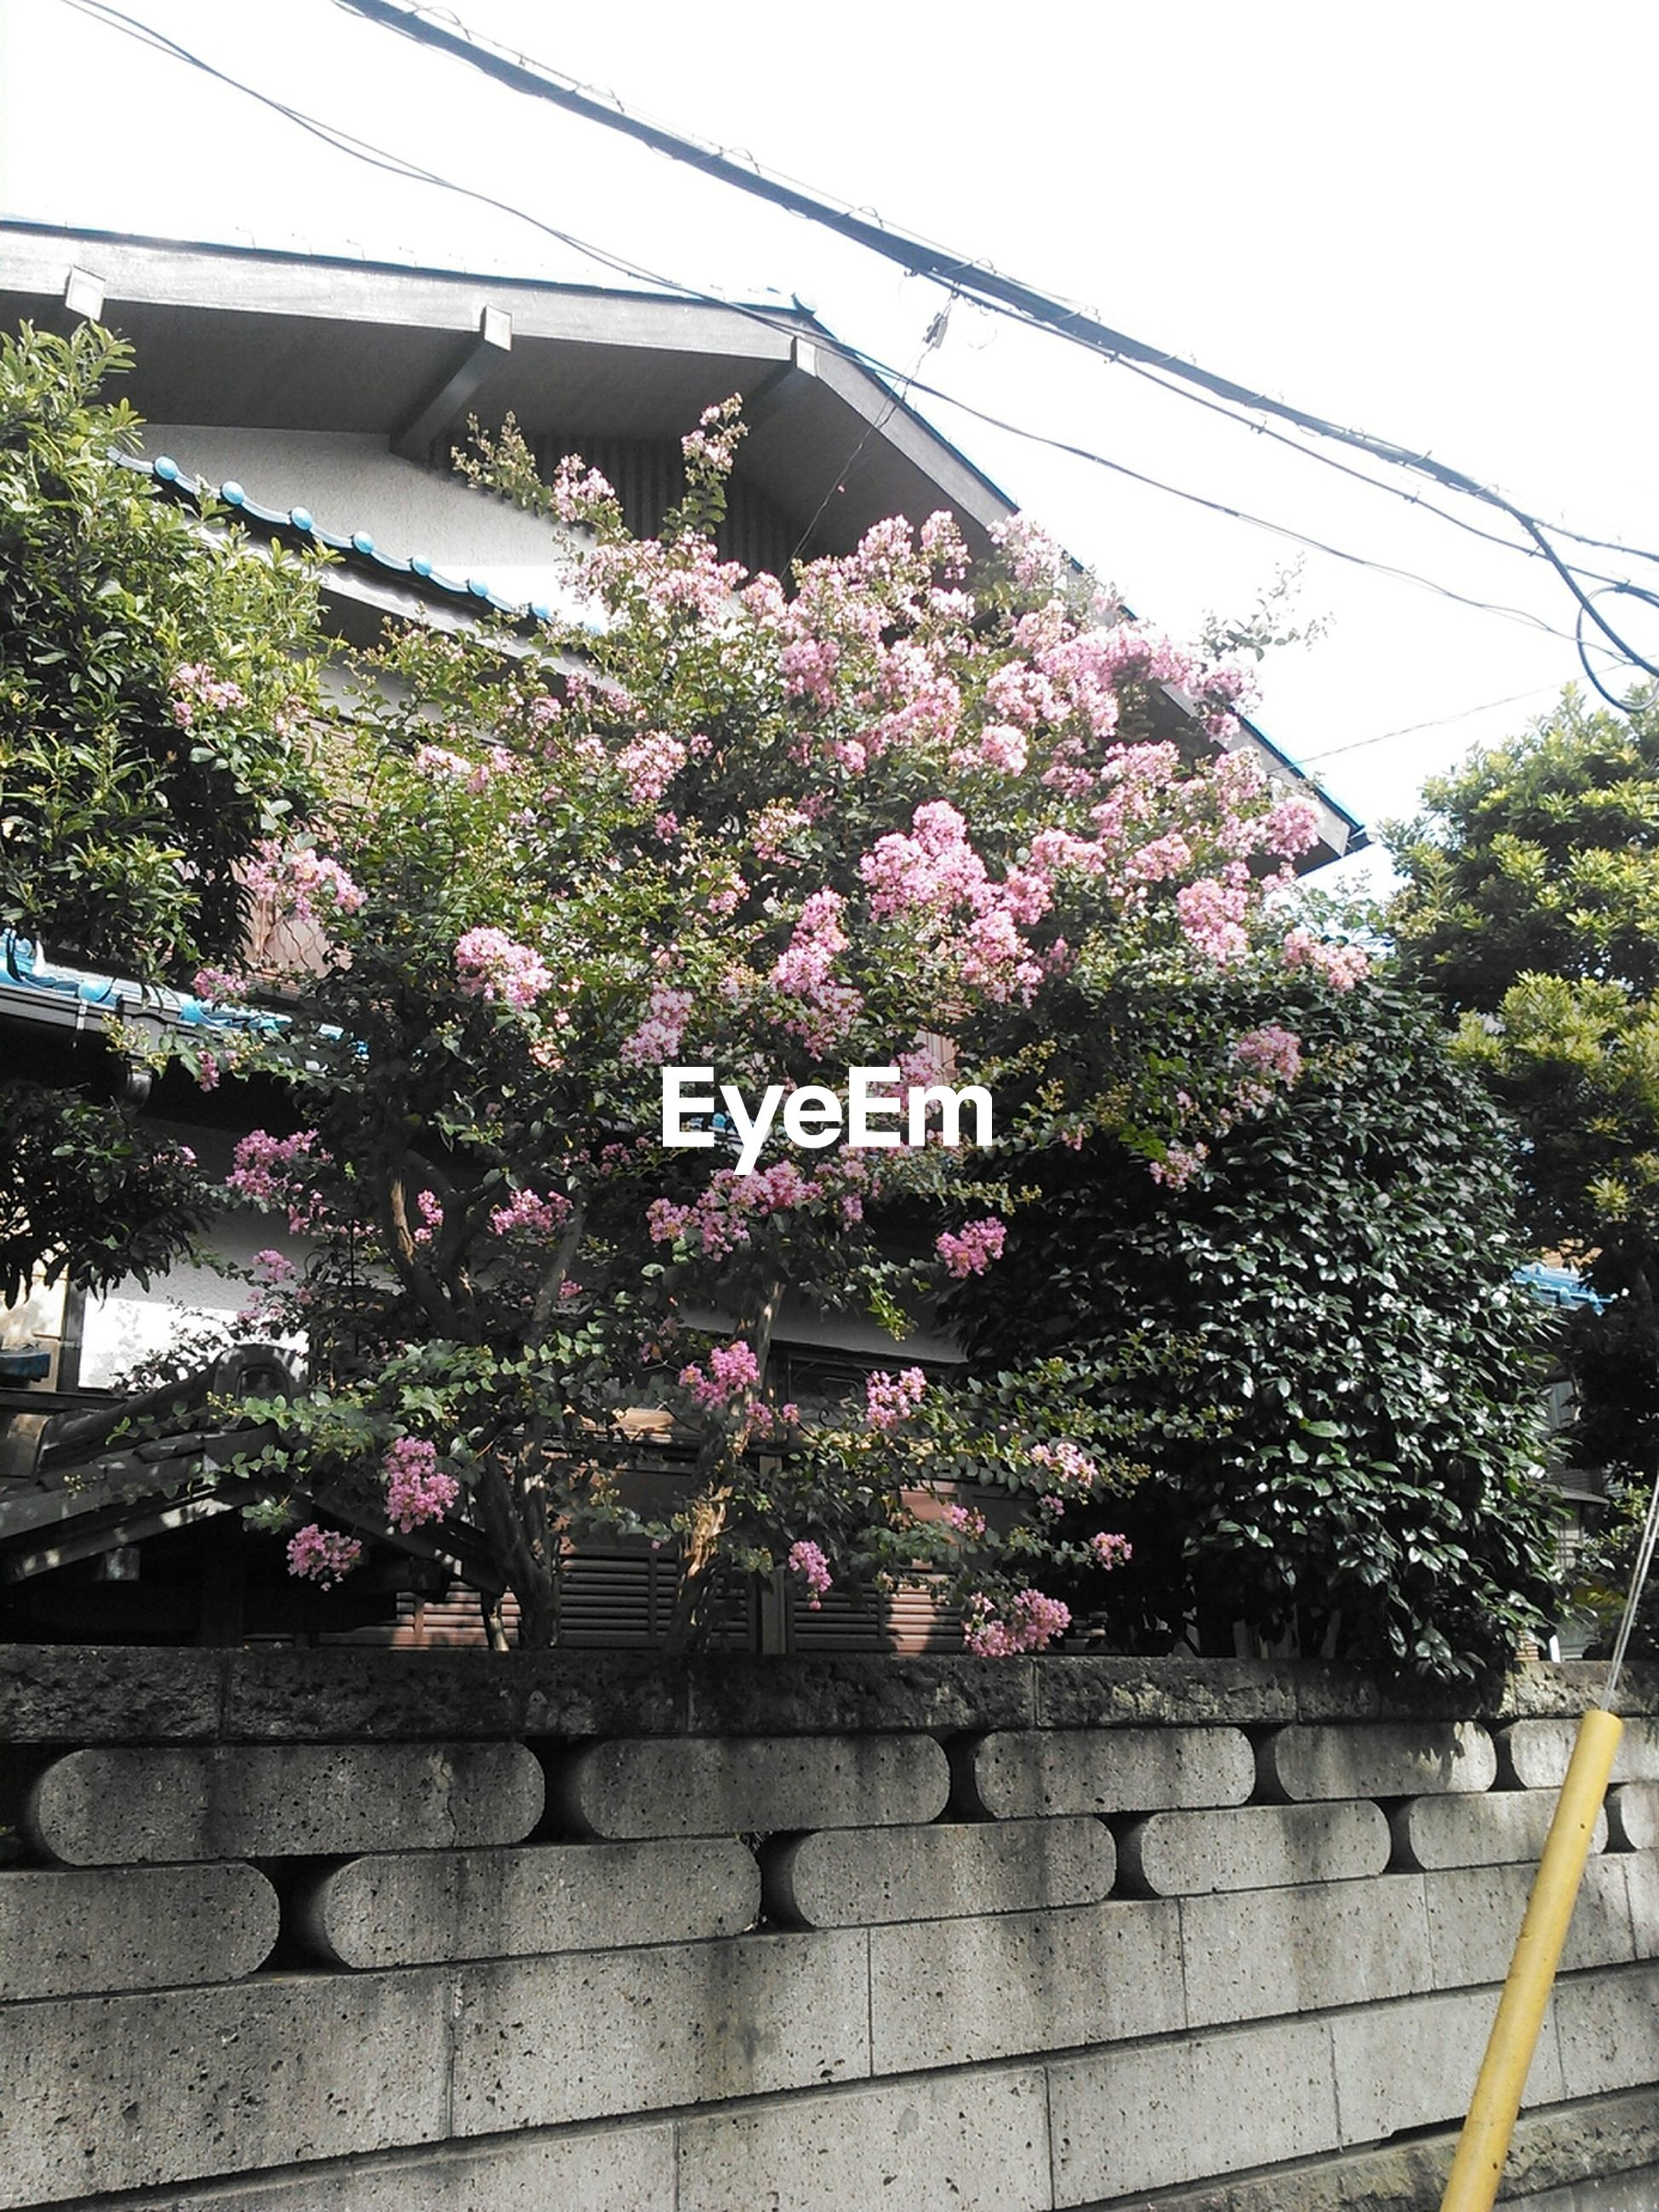 flower, growth, freshness, built structure, building exterior, tree, architecture, low angle view, plant, pink color, fragility, potted plant, nature, day, outdoors, blooming, house, clear sky, railing, sky